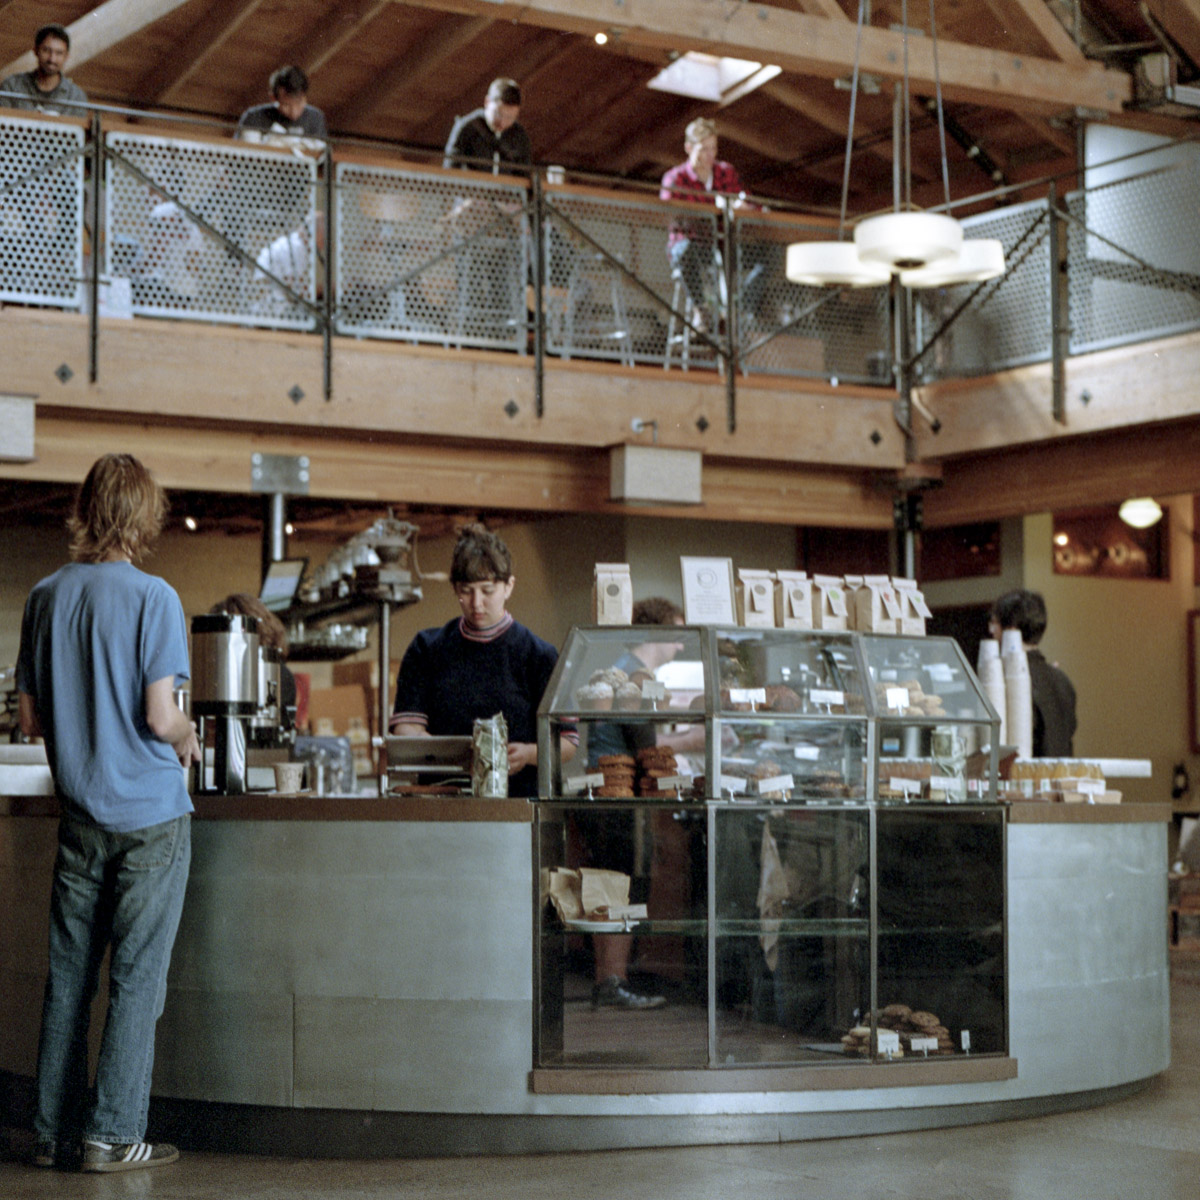 04304014_Jeffscottshaw_Sightglass_Coffee-4